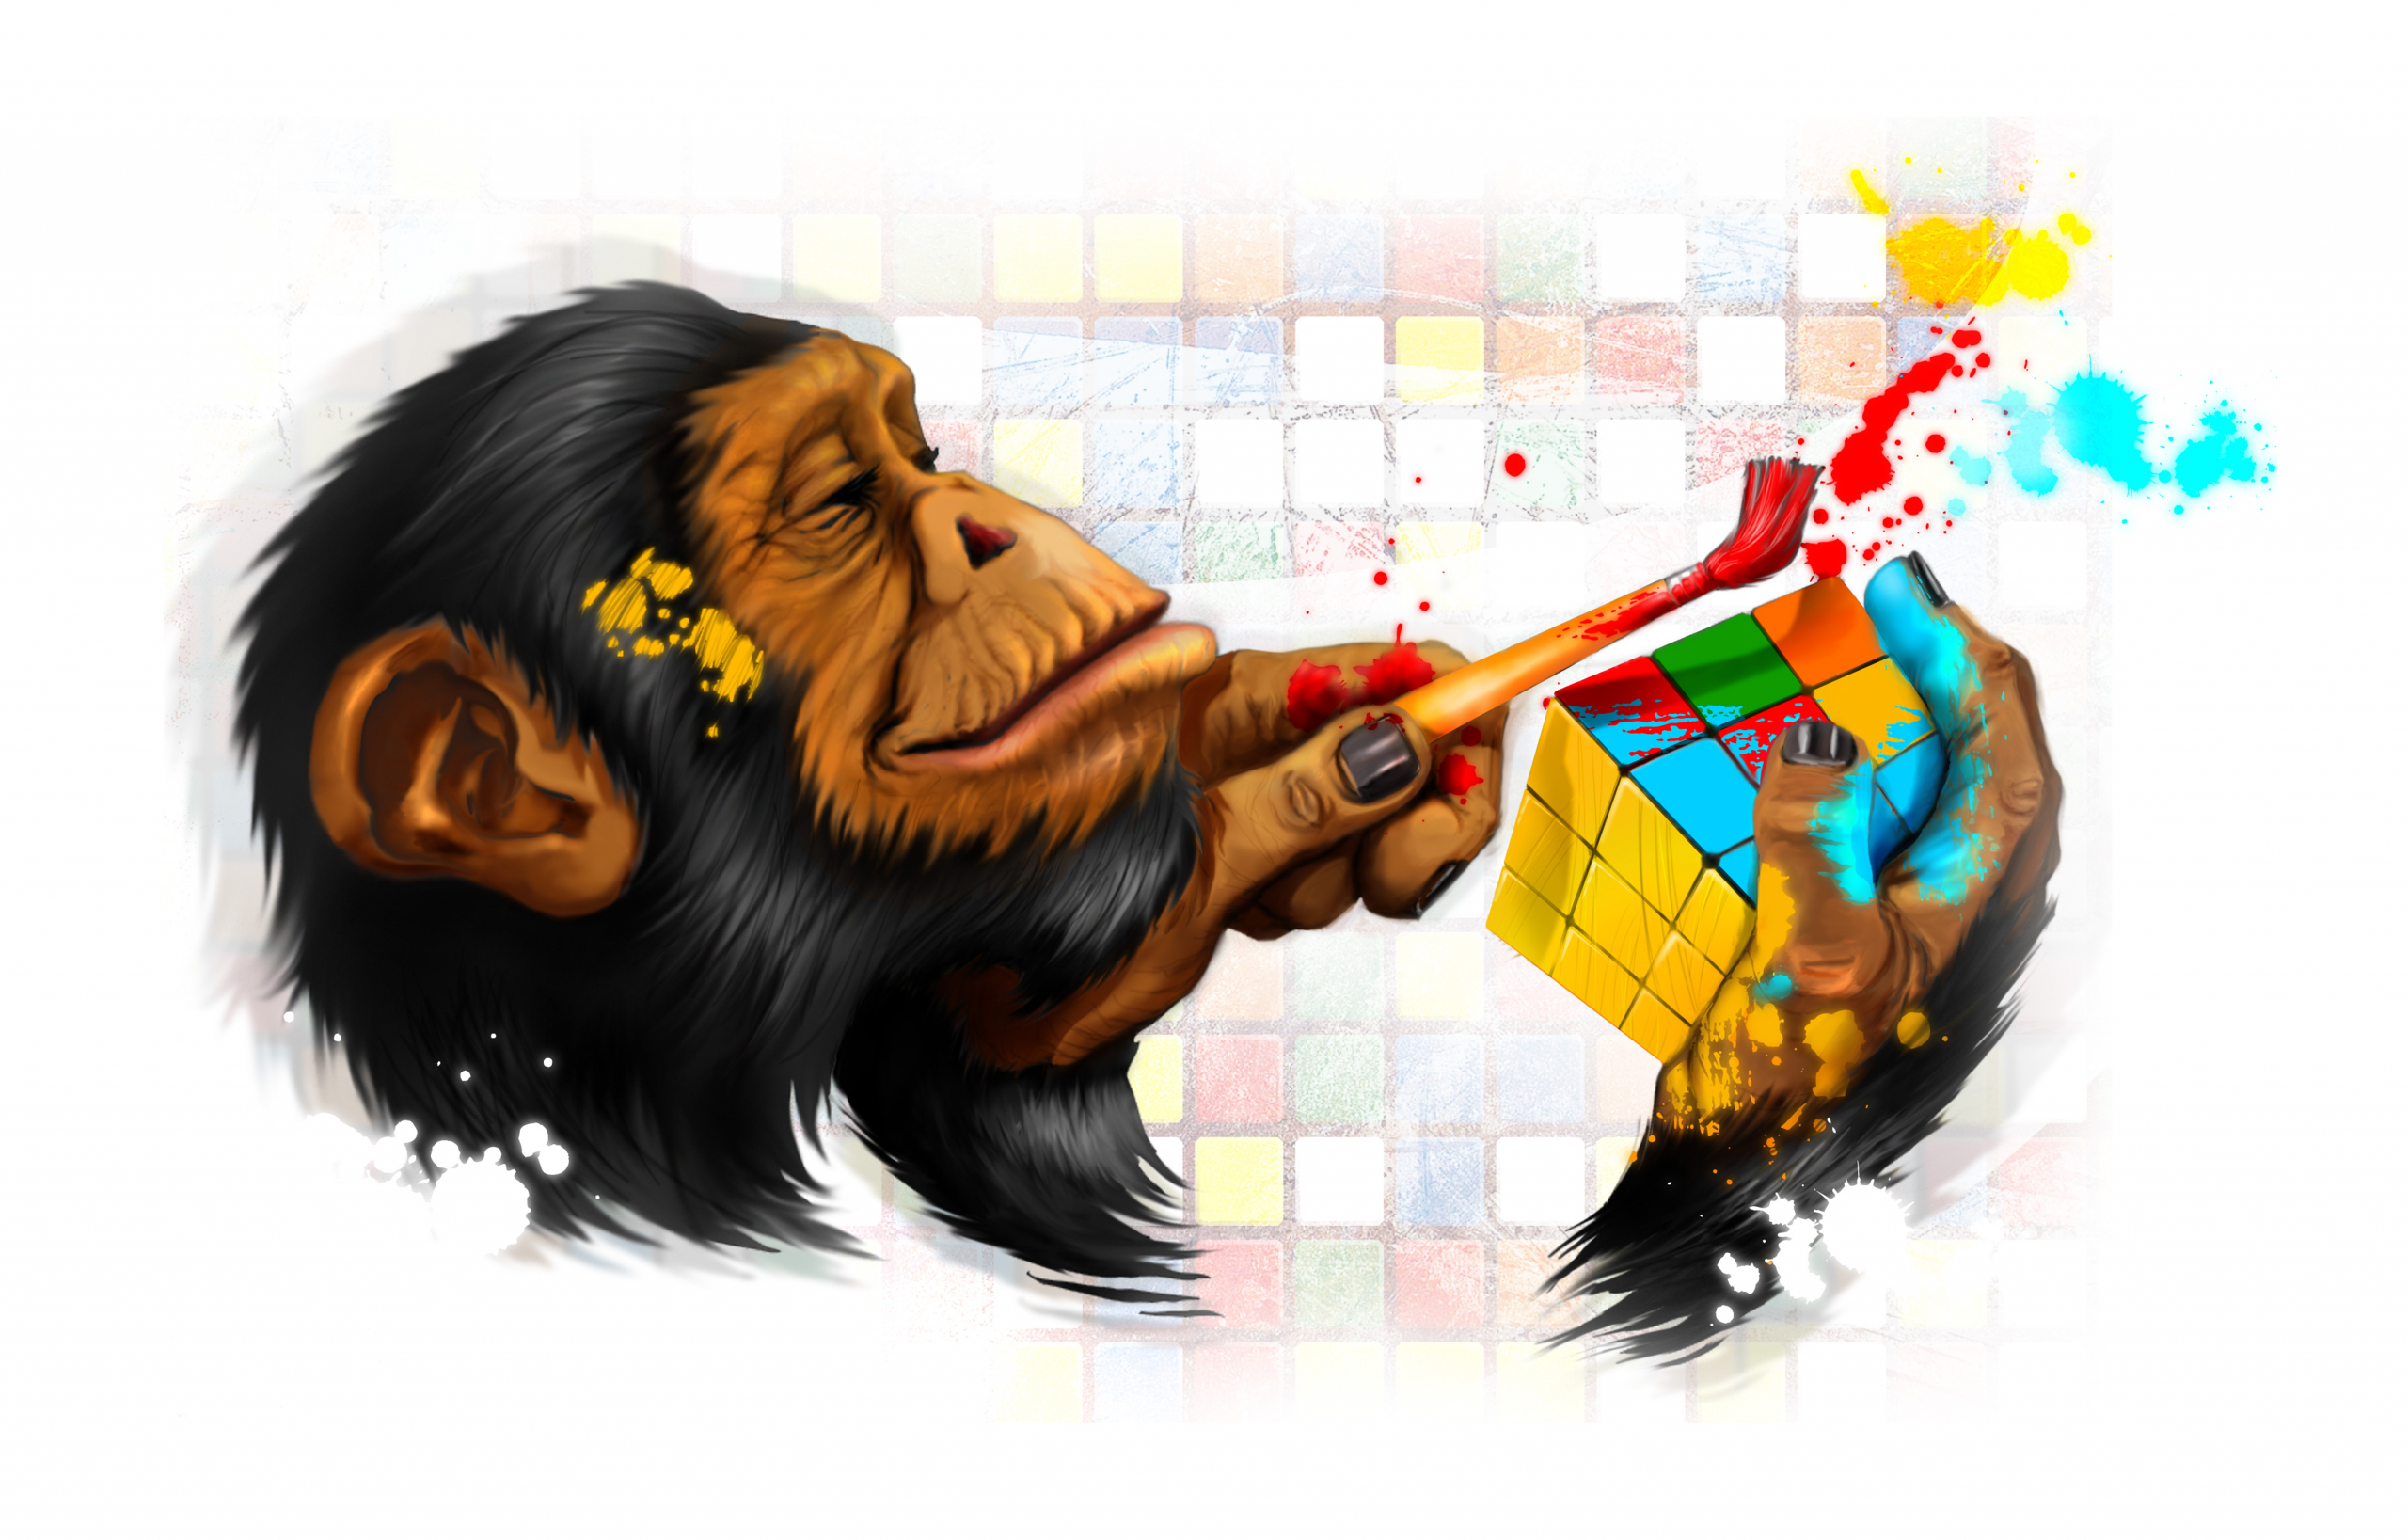 chimp_by_dracoimagem_com_d1w0gqs